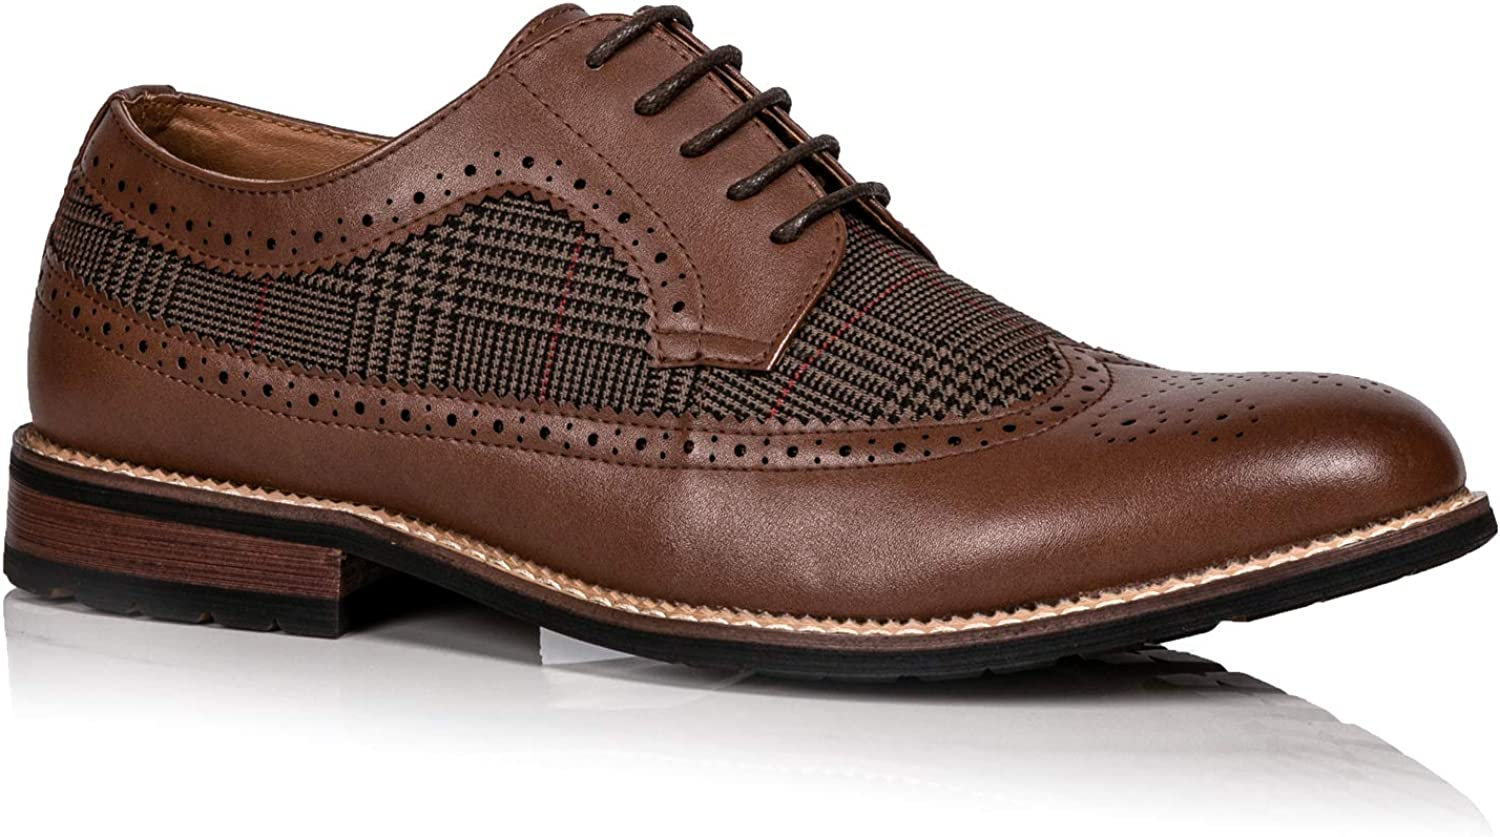 Metrocharm MC316 Men's Tweed Perforated Wing Tip Lace Up Dress Oxford Shoe